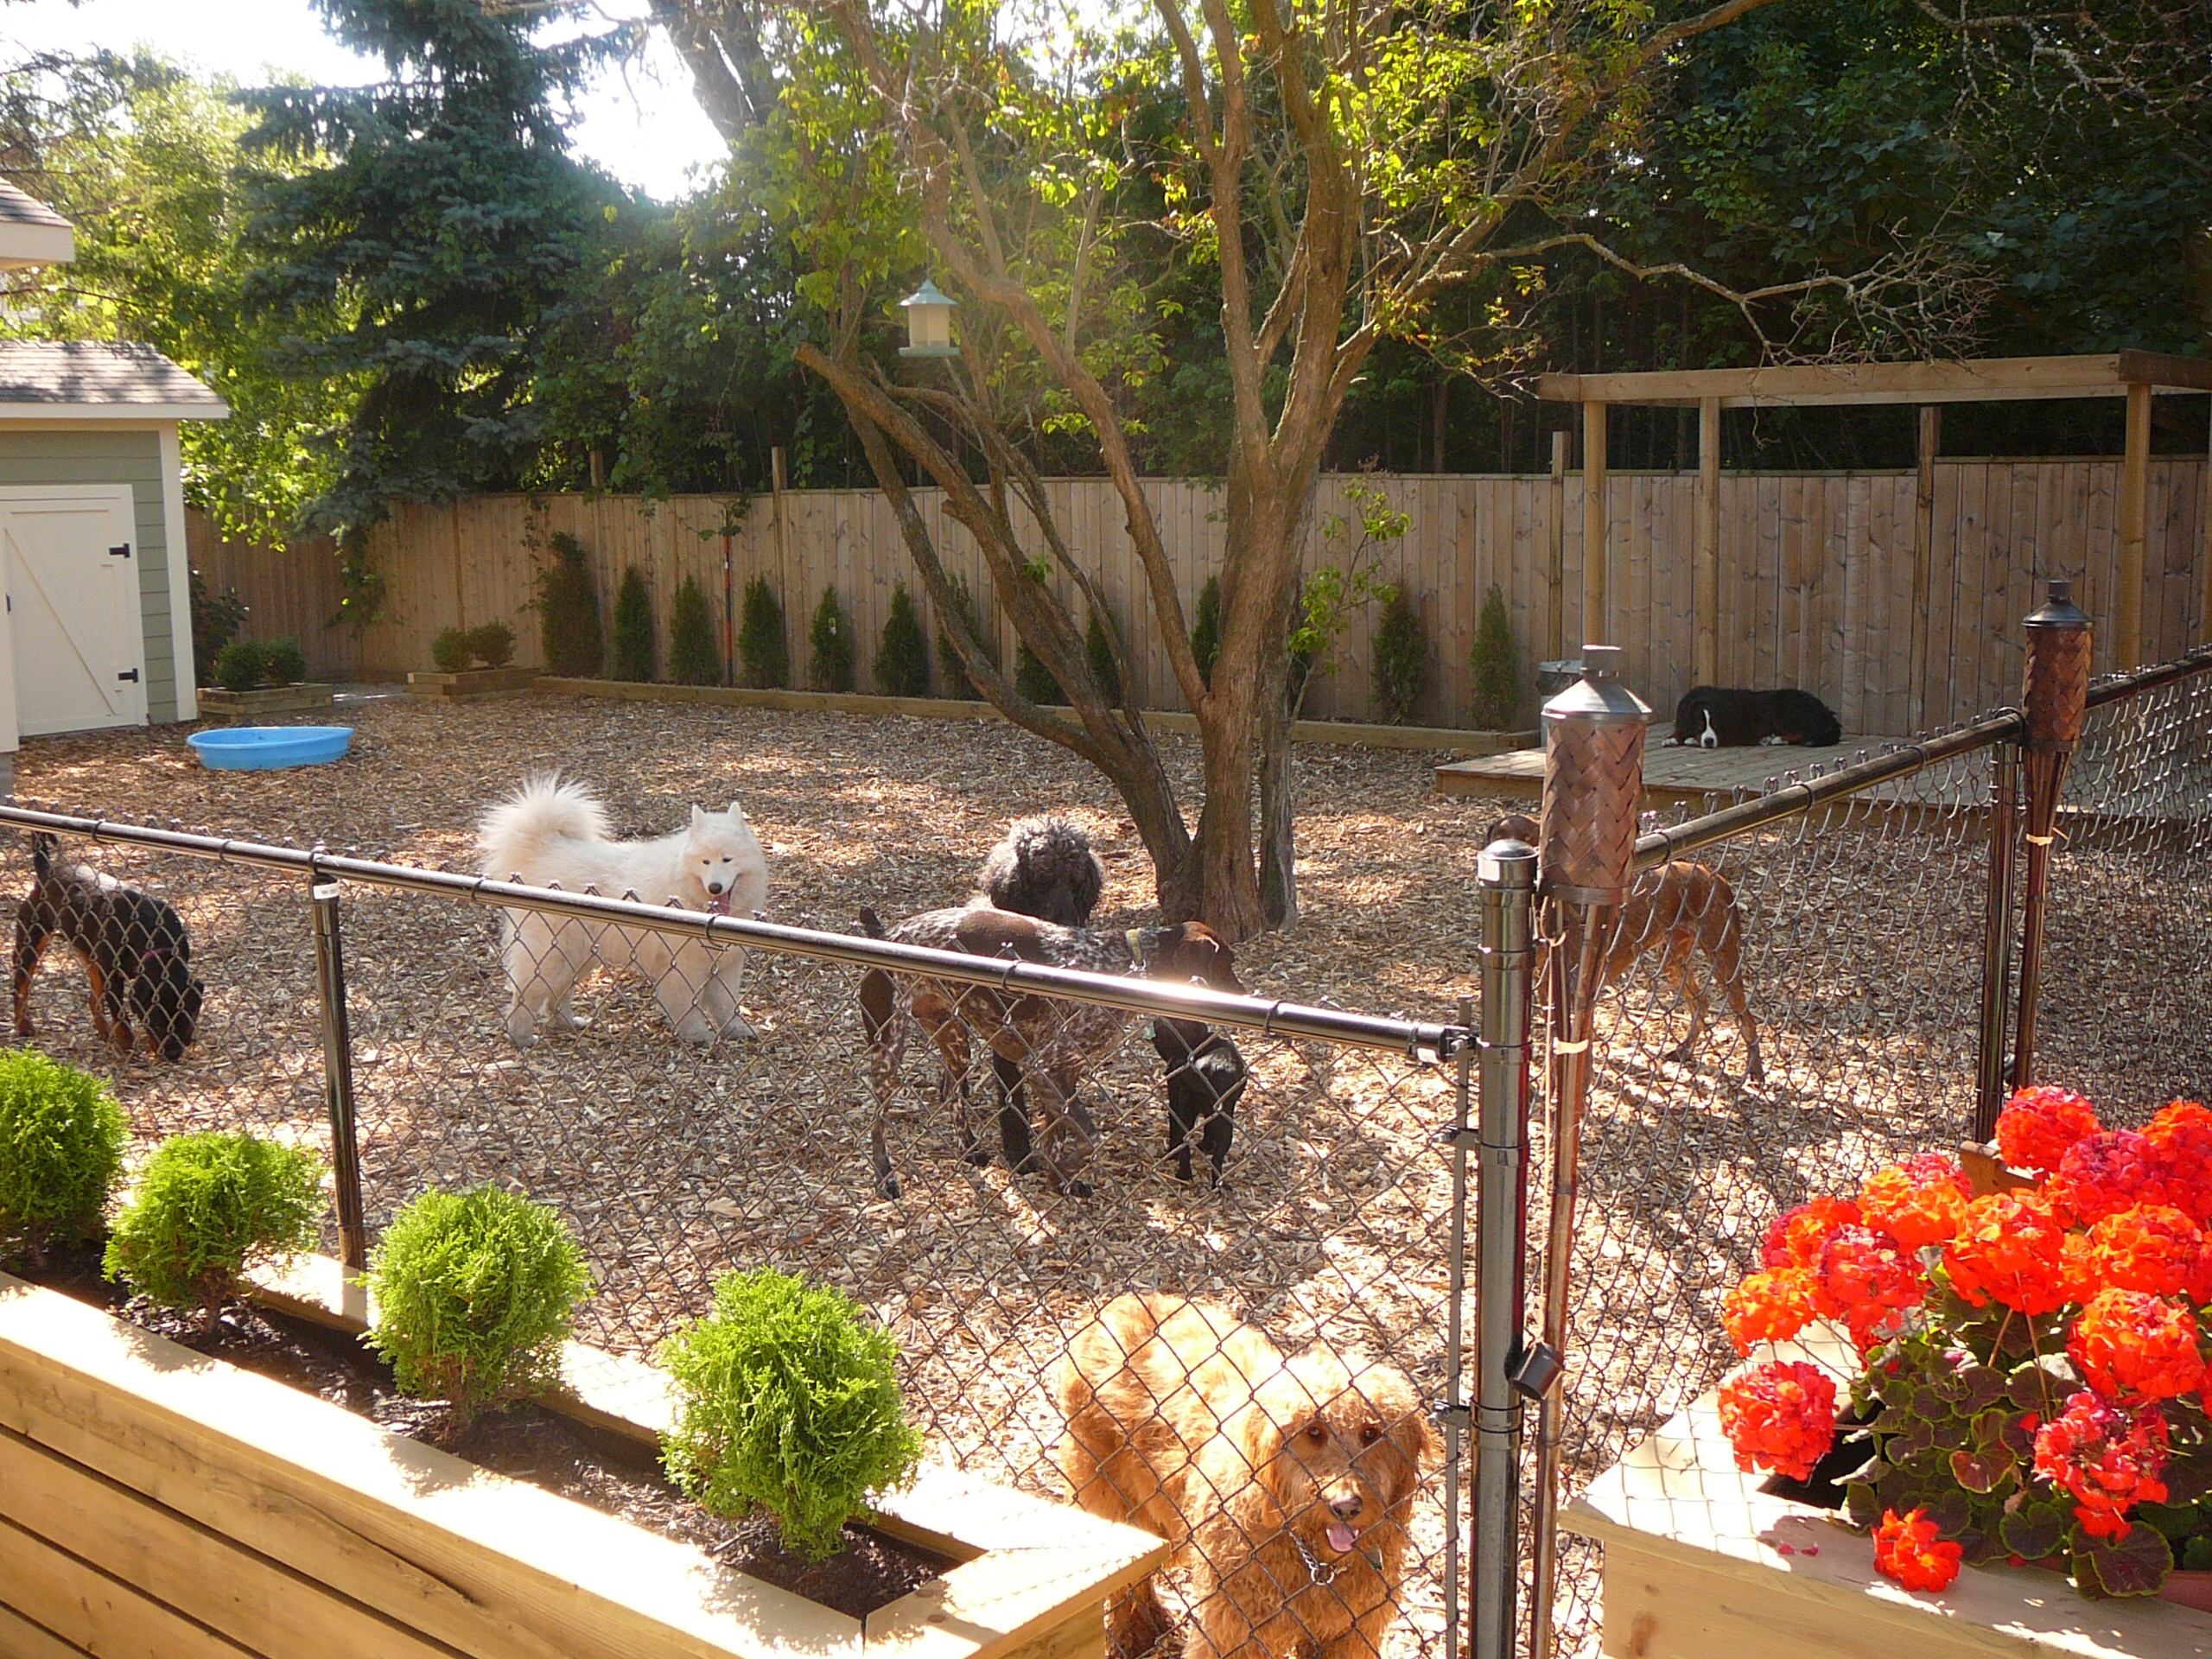 Ideas For Backyard Best Small Backyards With Dogs Deepnot Golimeco with Backyard Landscaping Ideas For Dogs